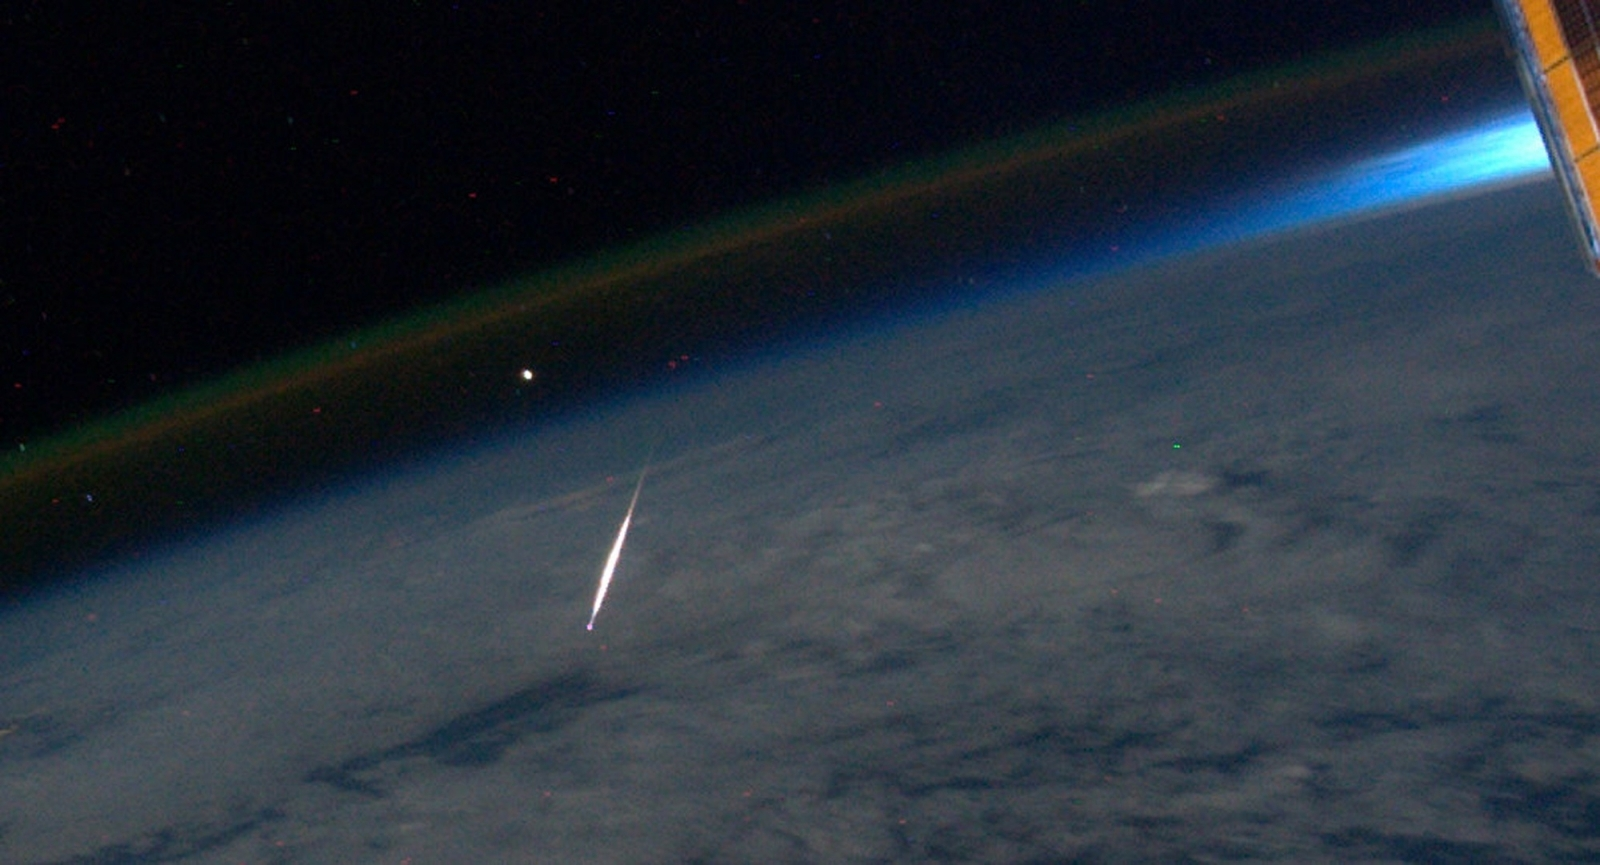 Watch: Nasa astronaut captures shooting star from International Space Station